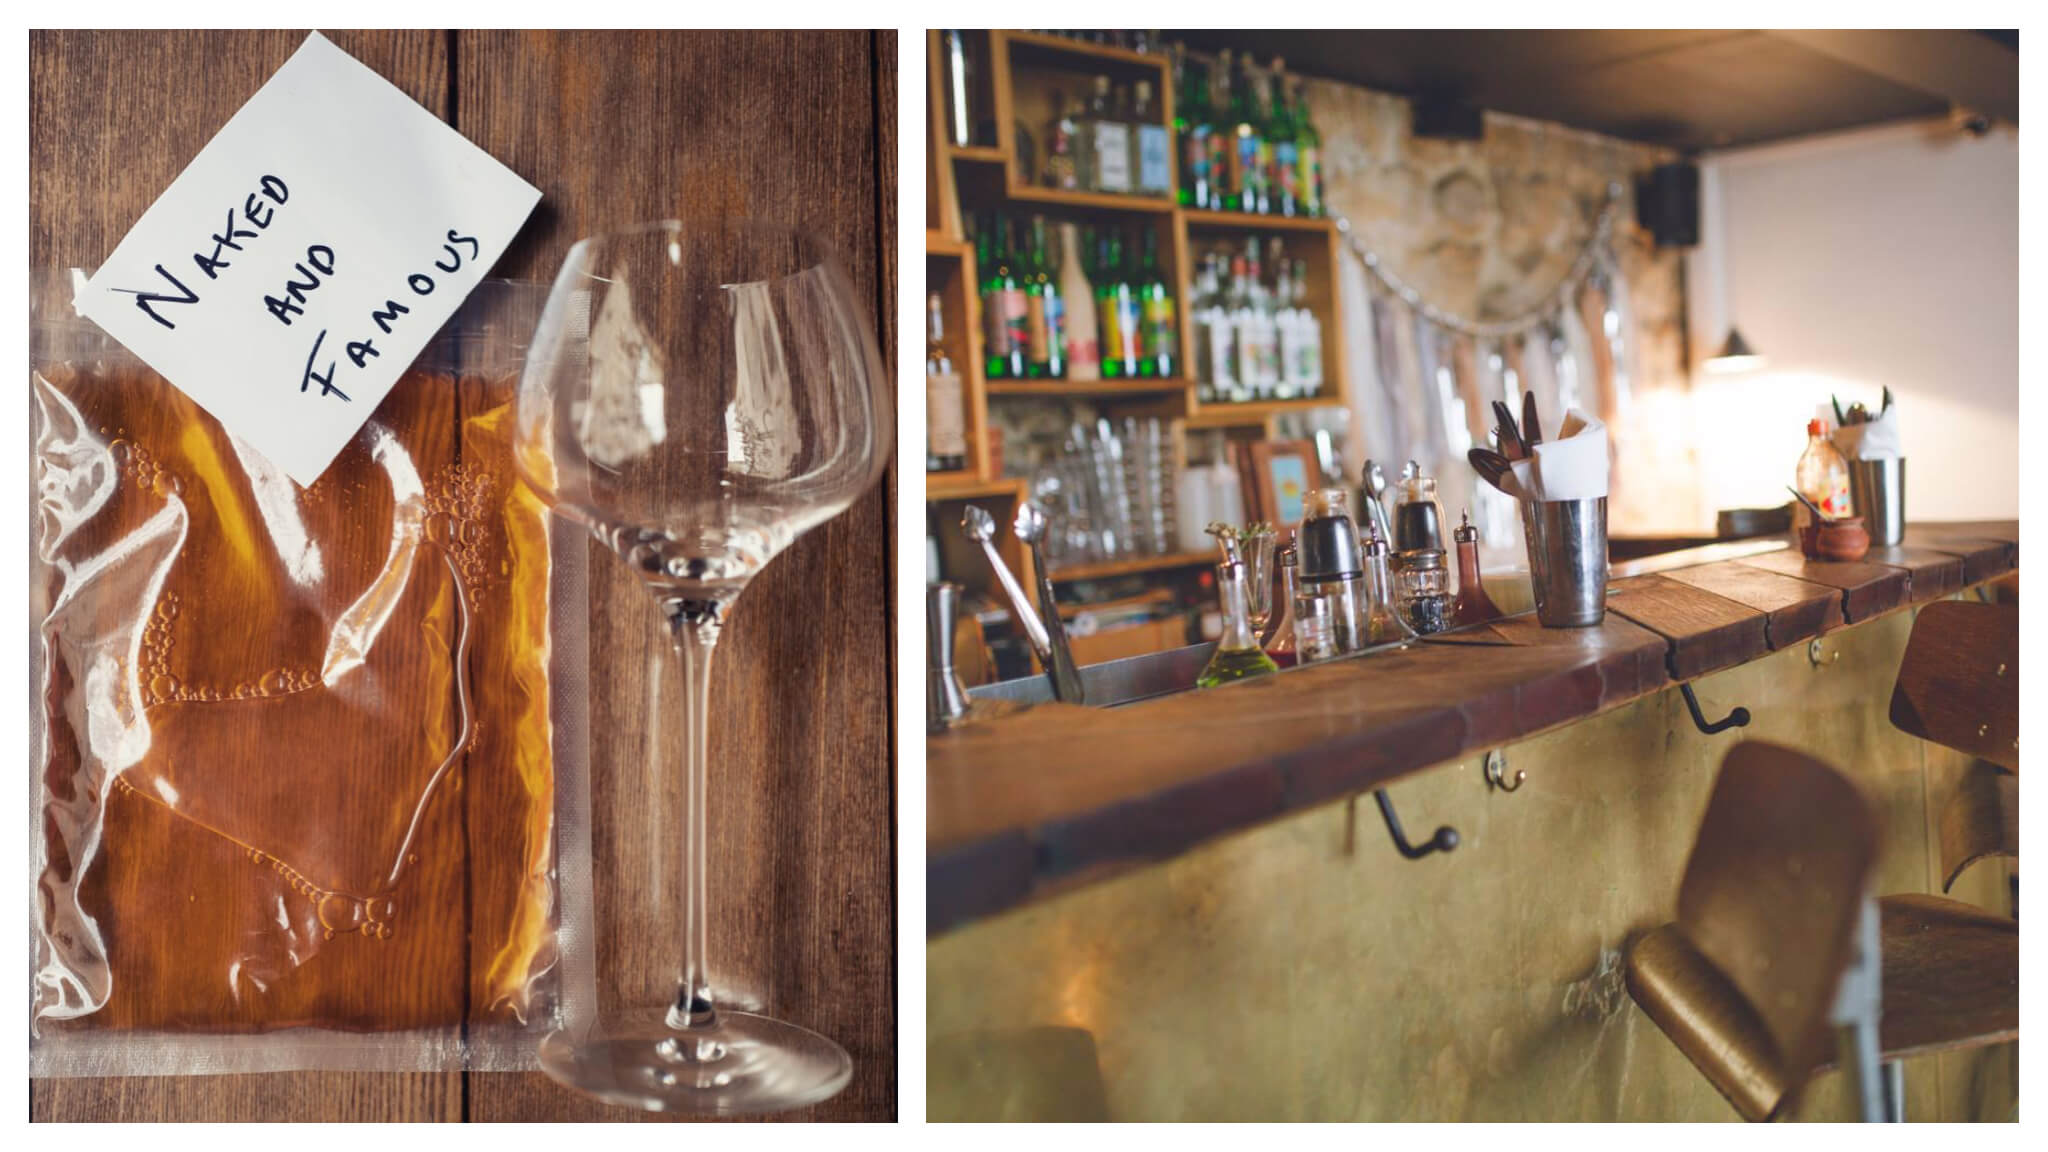 Left: A wine glass on a wooden table next to a pouch of wine. Right: the bar at Candelaria in Paris.